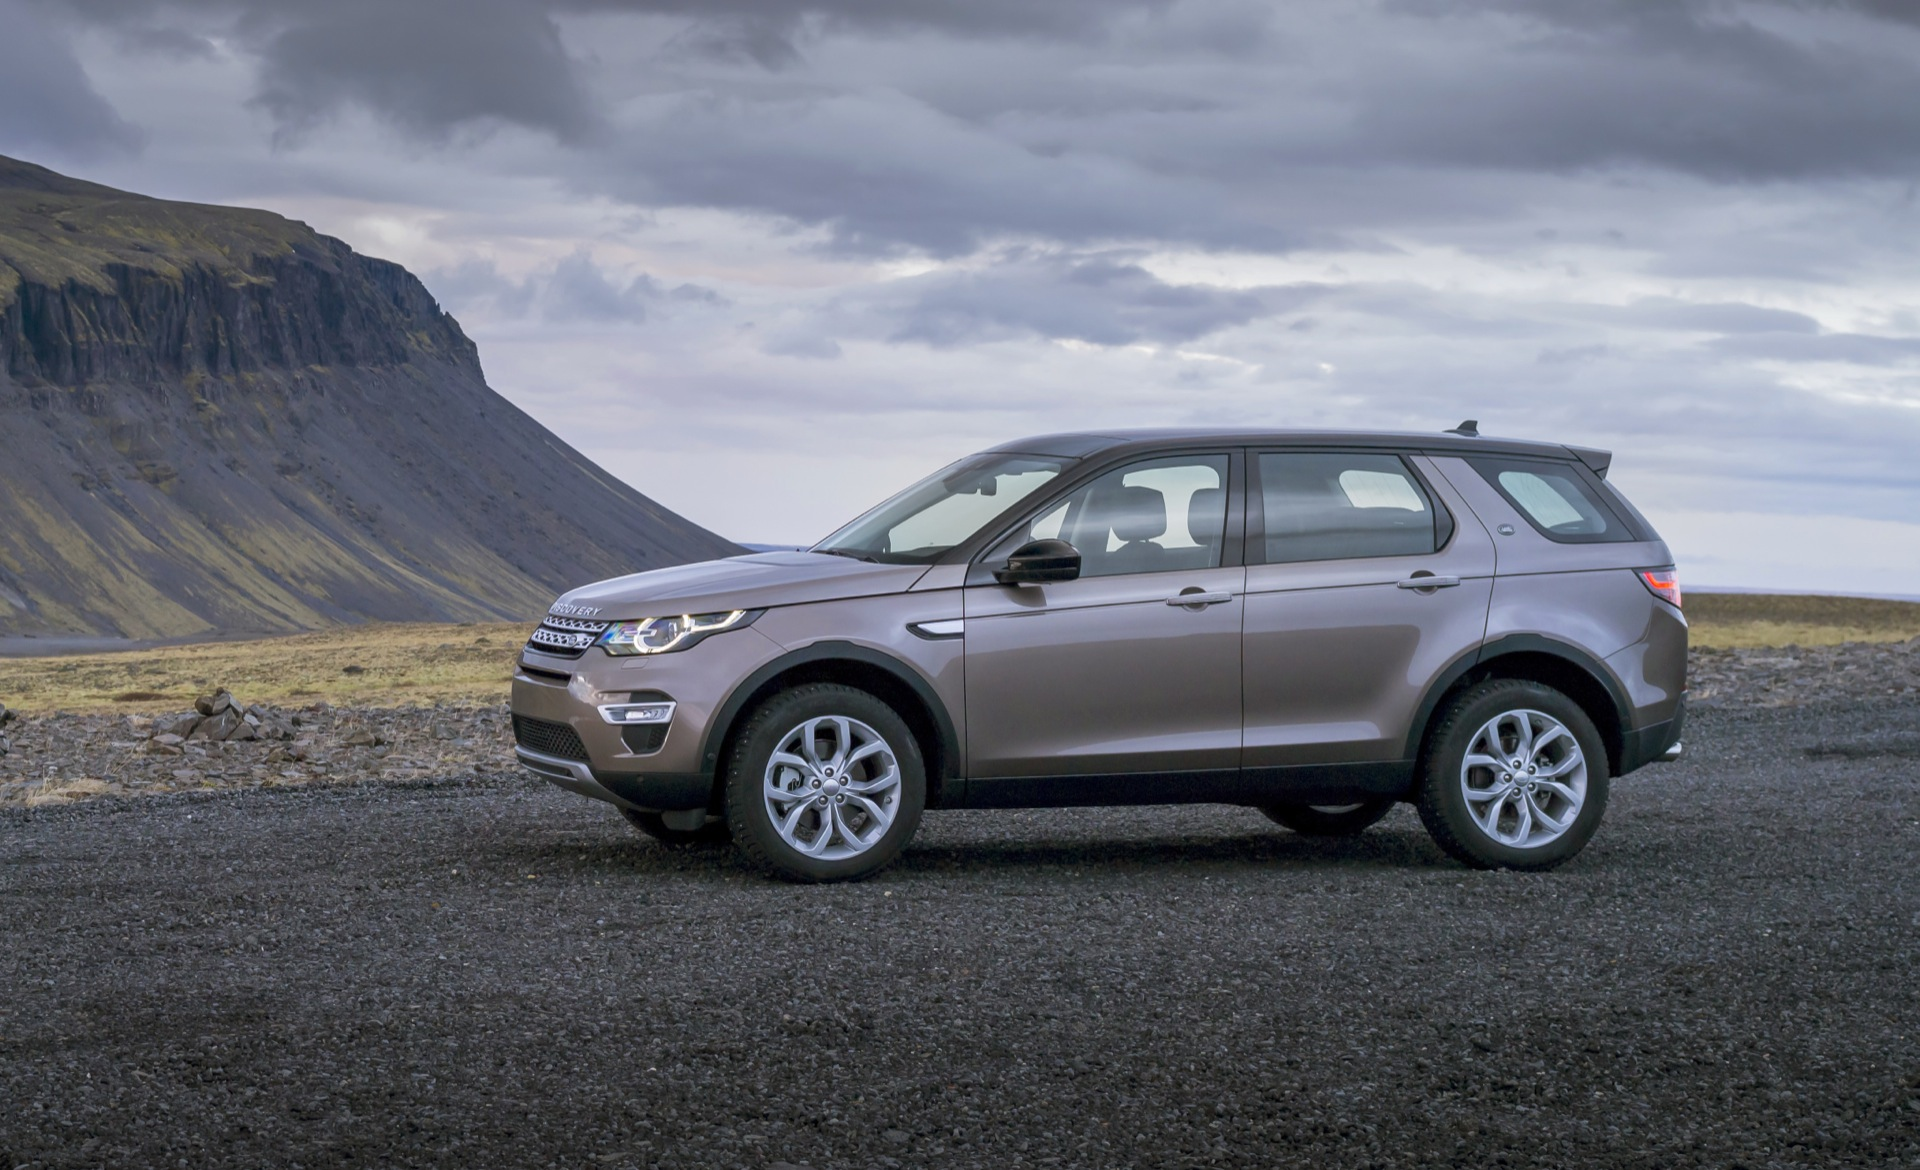 2016 Land Rover Discovery Sport Performance Review - The ...